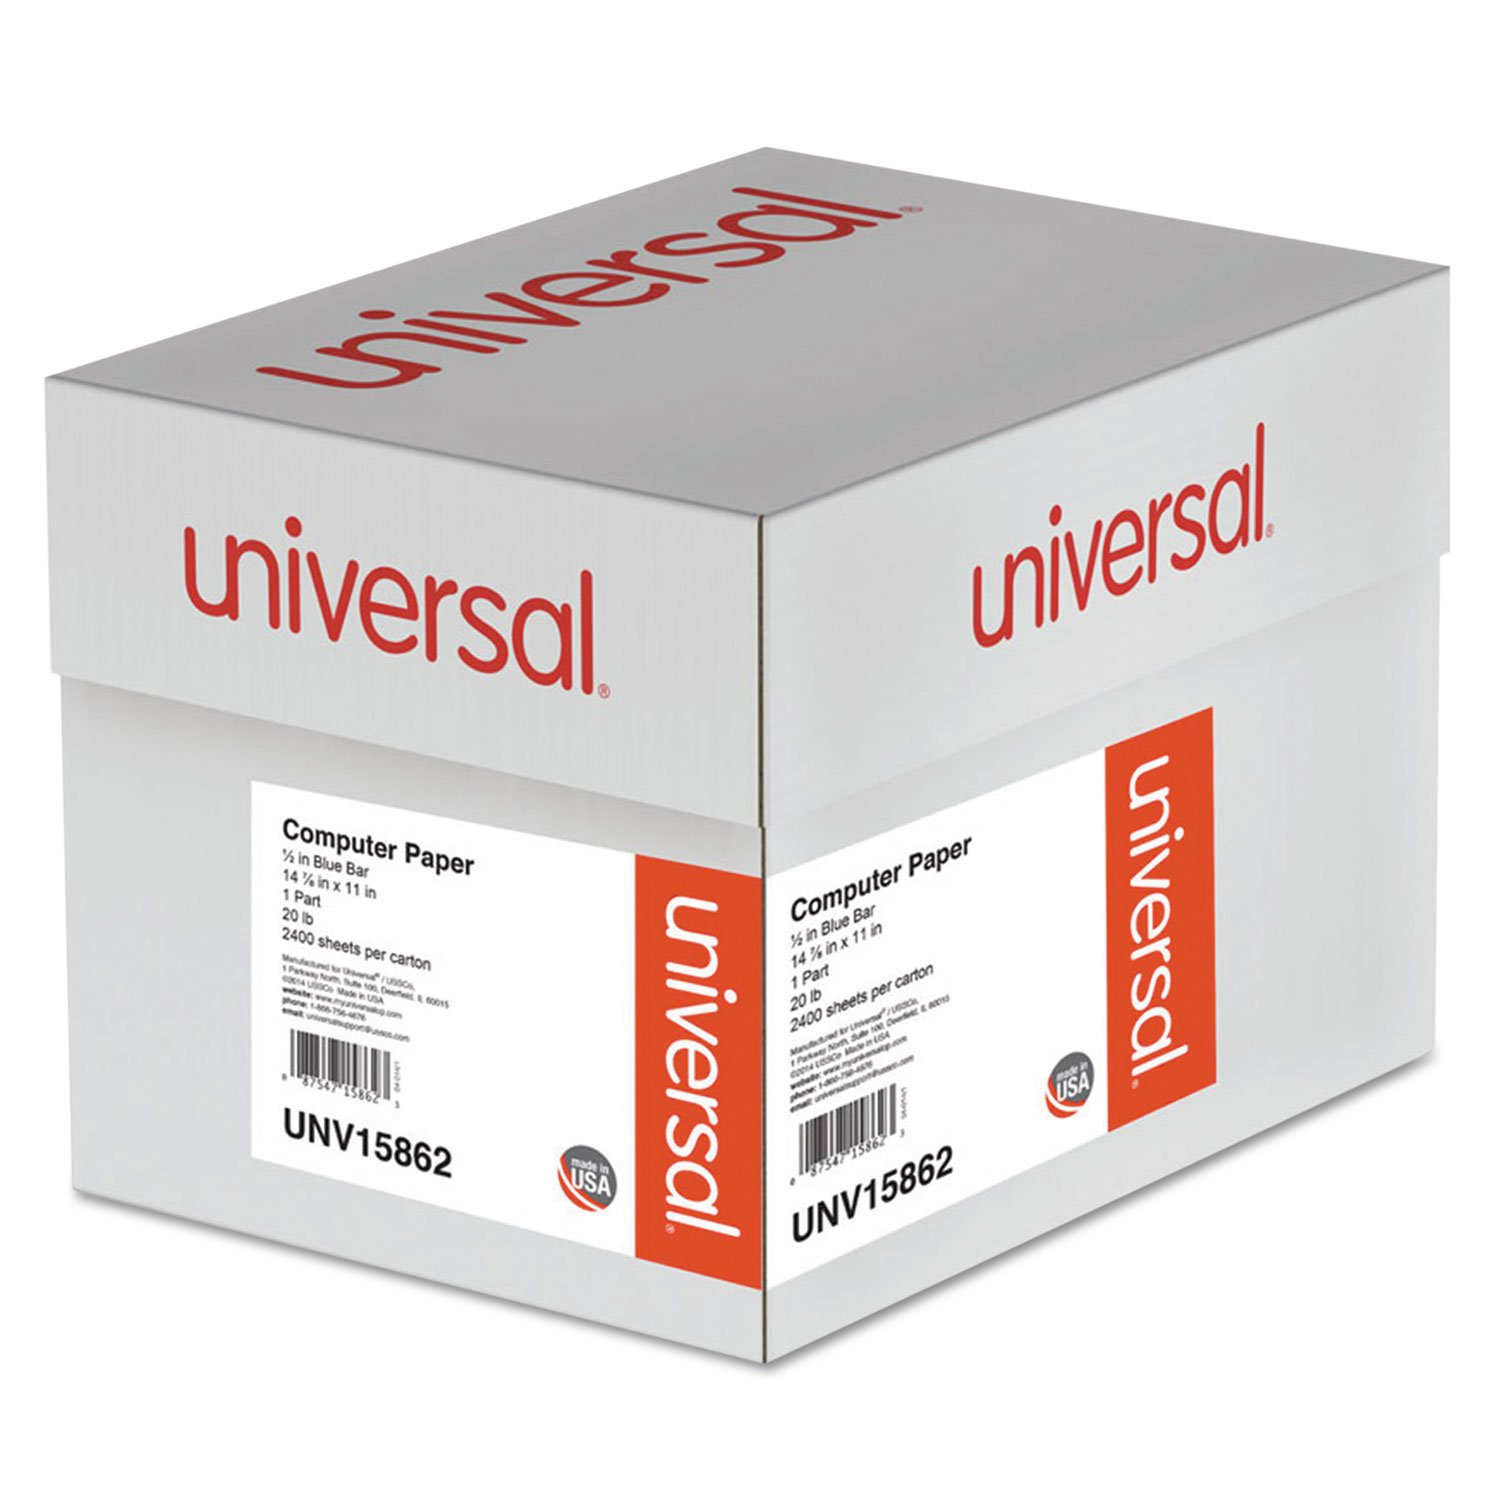 Universal 15862 Blue Bar Computer Paper, 20lb, 14-7/8 x 11, Perforated Margins, 2400 Sheets